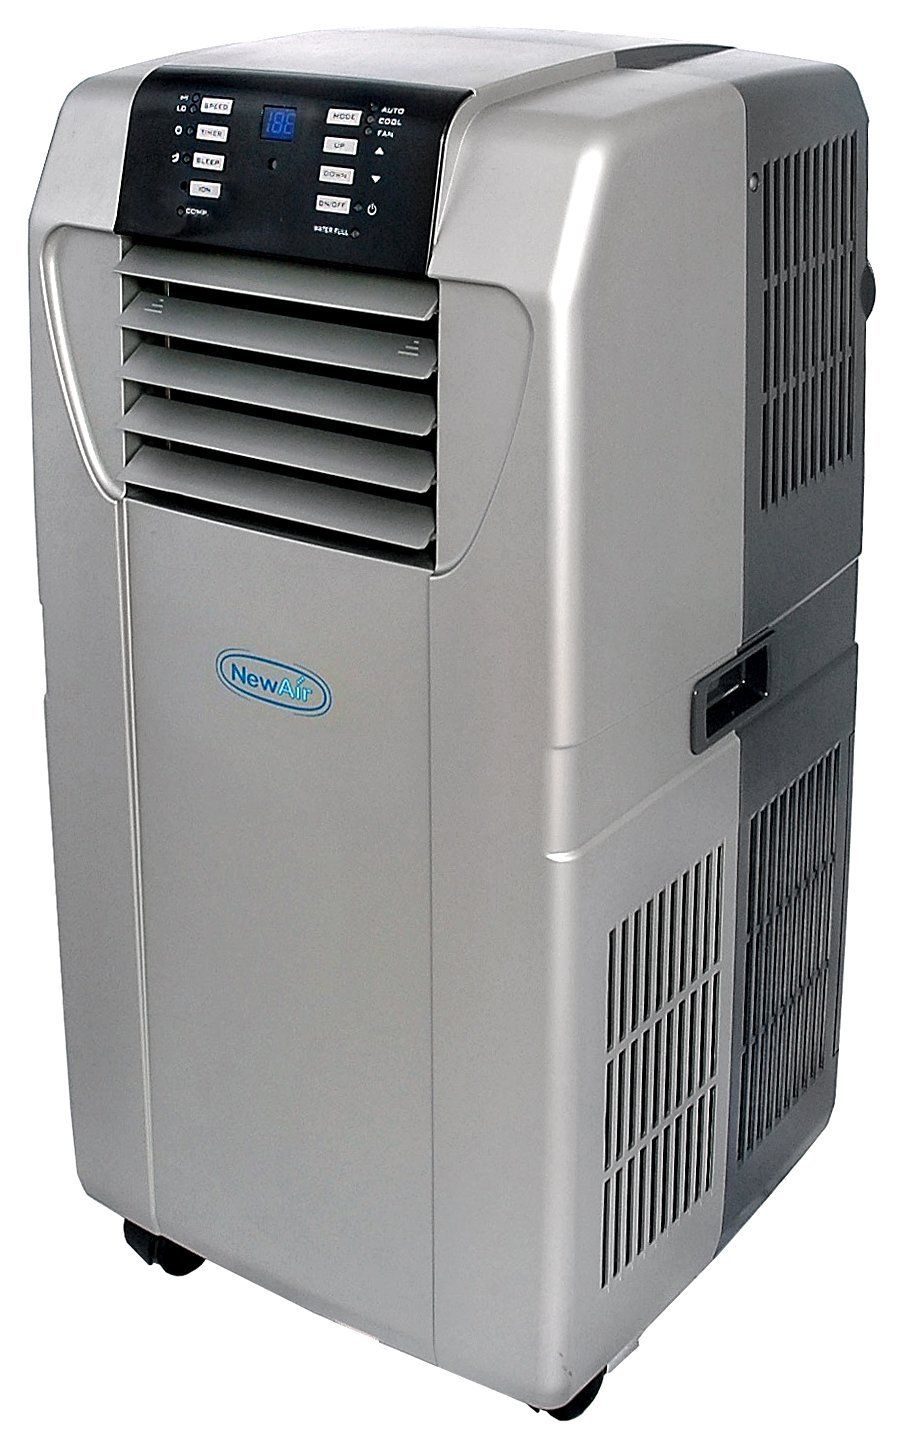 NewAir AC12000H 12,000 BTU Heat Pump Portable Air